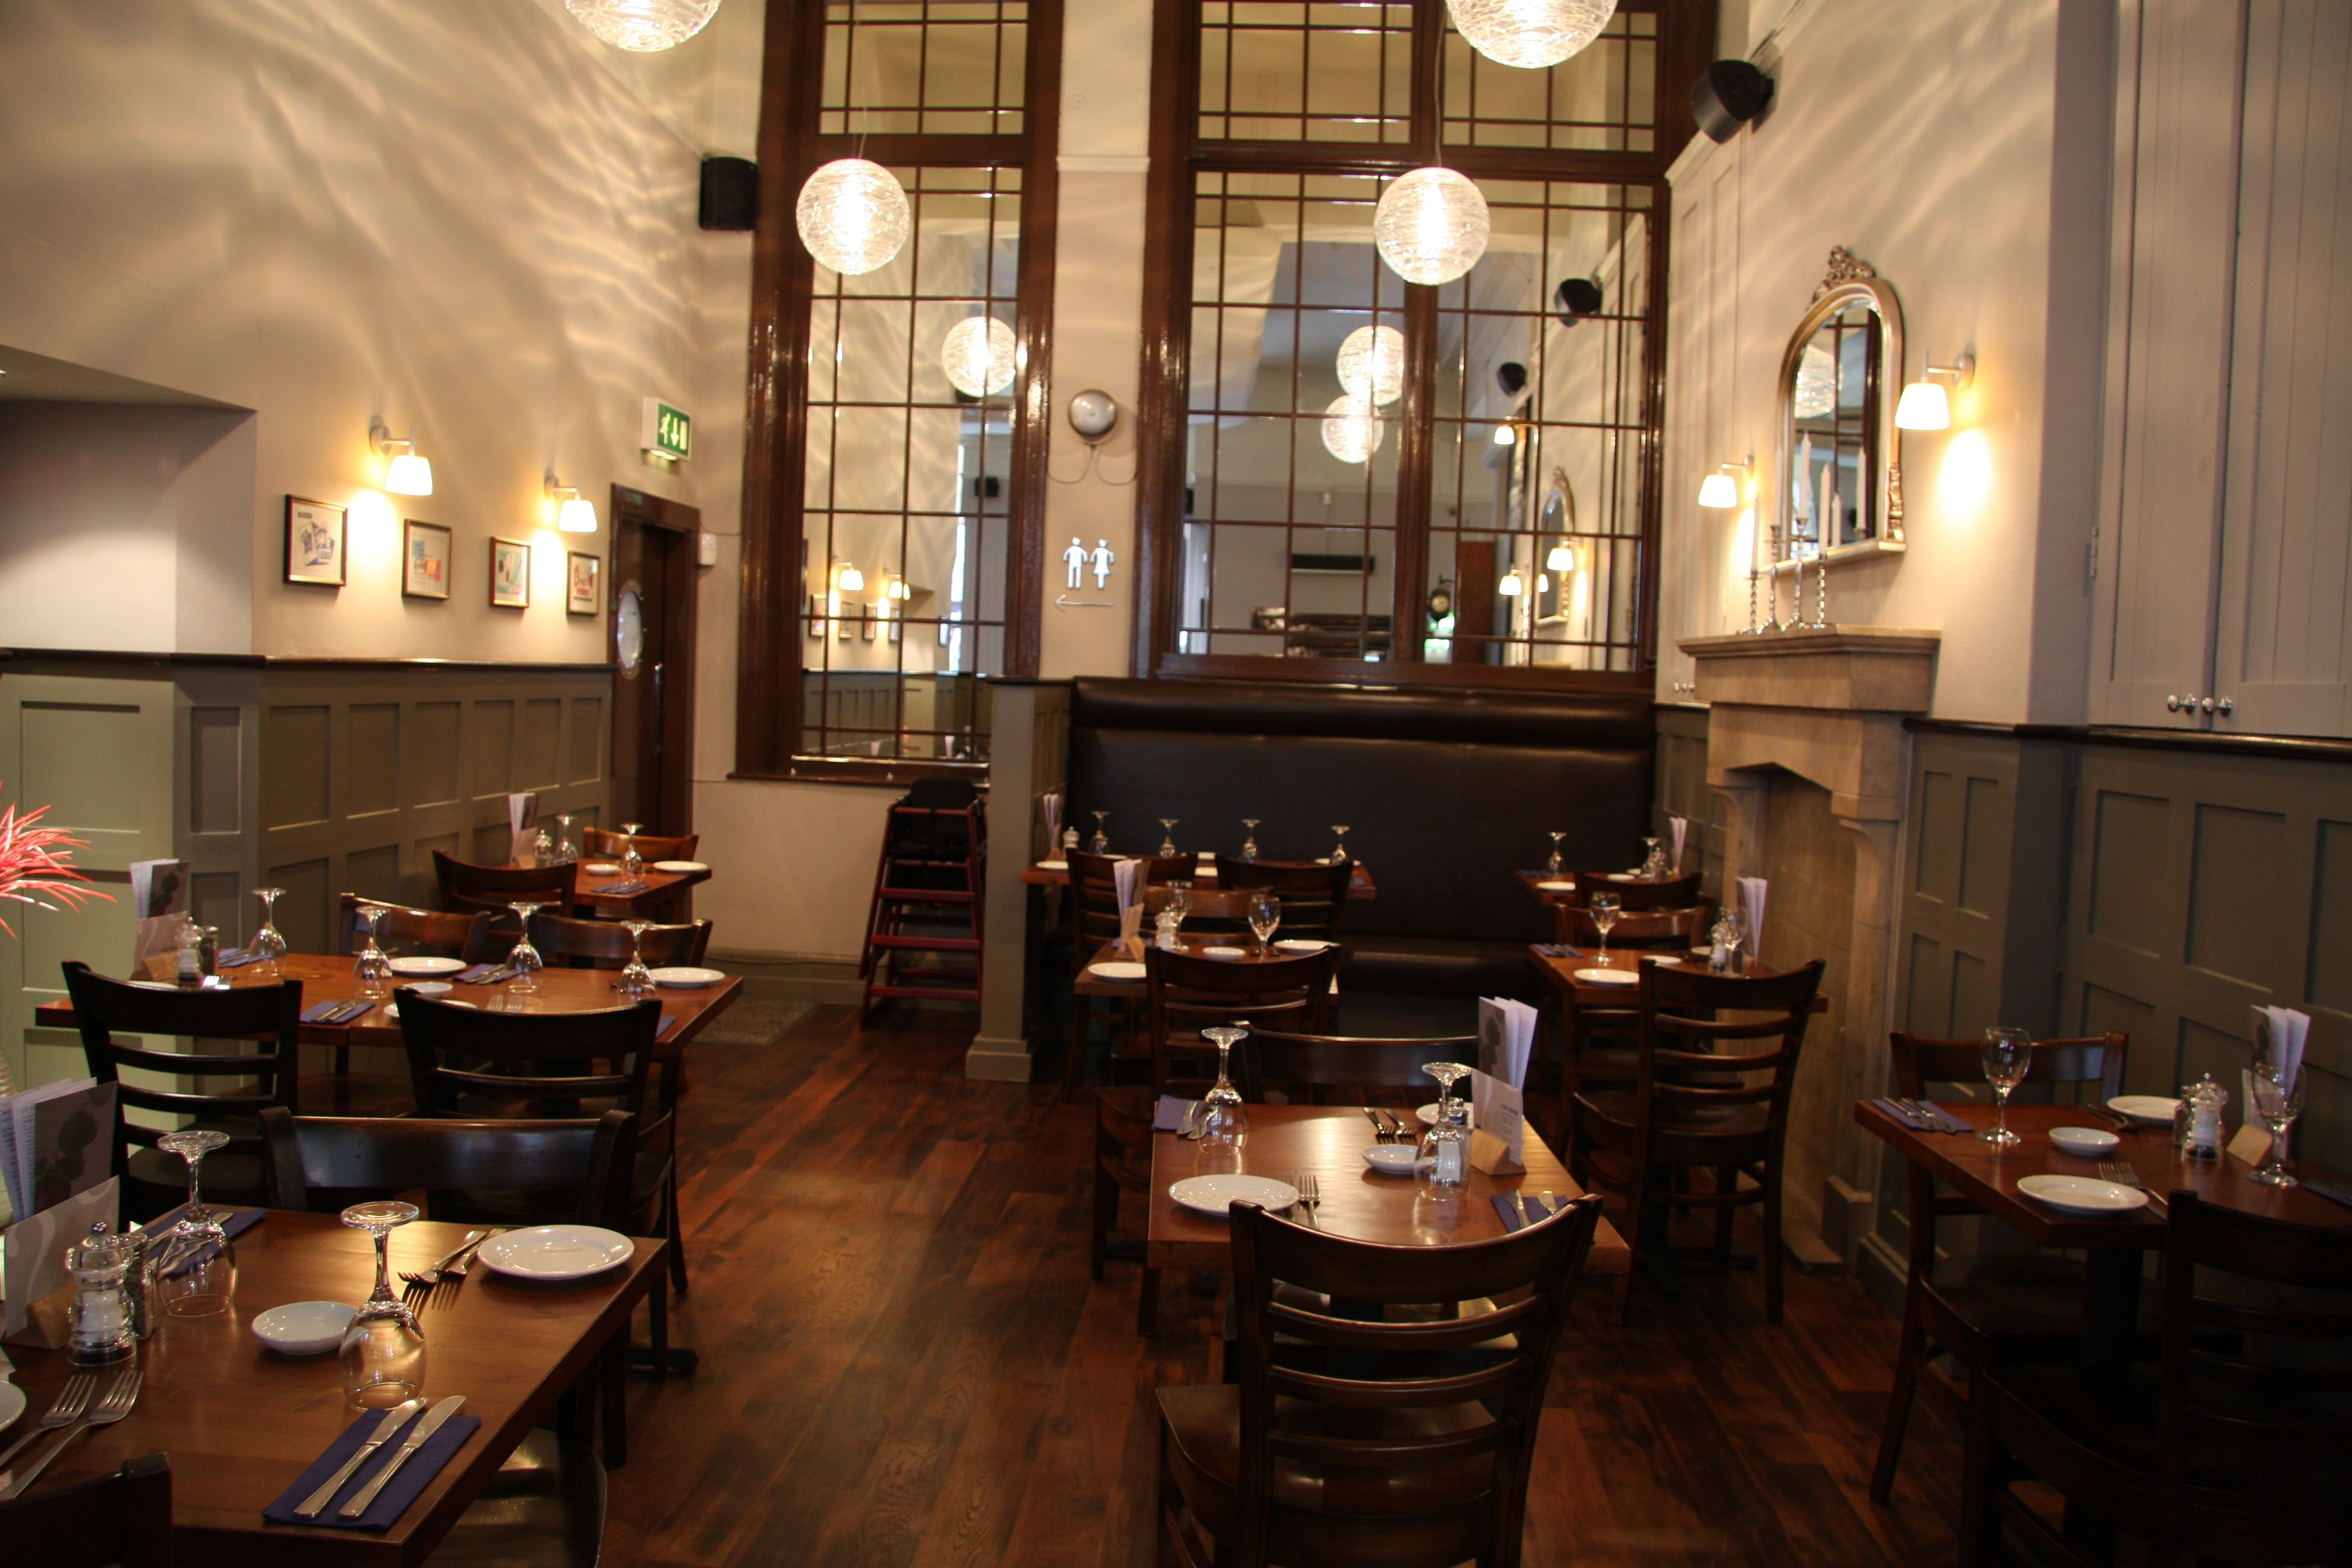 Dine in style & comfort at Le Bistrot Pierre, Nottingham.